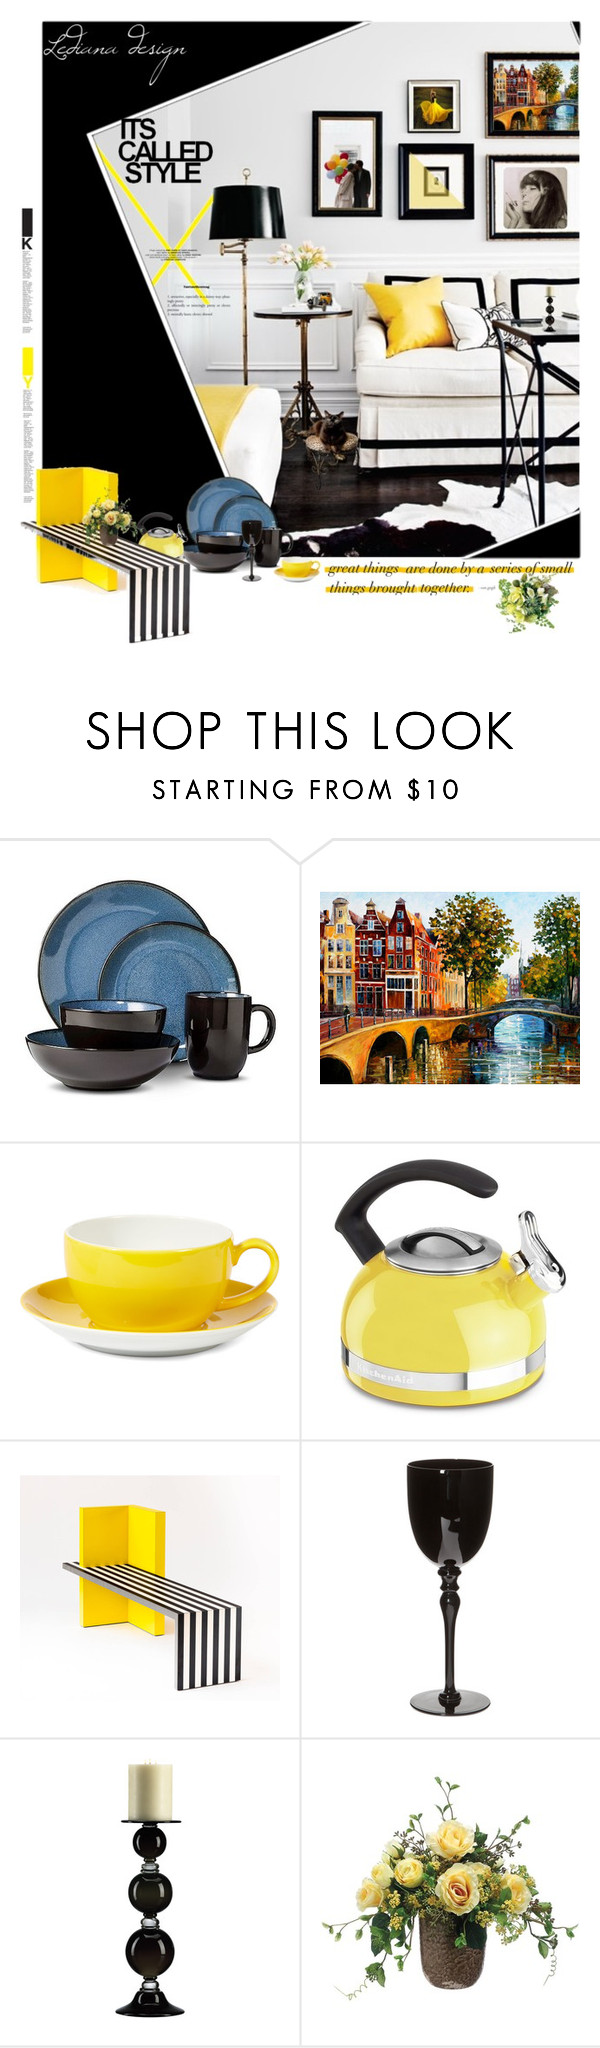 """""""Yellow & Black"""" by ledianaaaaa ❤ liked on Polyvore featuring interior, interiors, interior design, home, home decor, interior decorating, Threshold, Dibbern, KitchenAid and Guide London"""